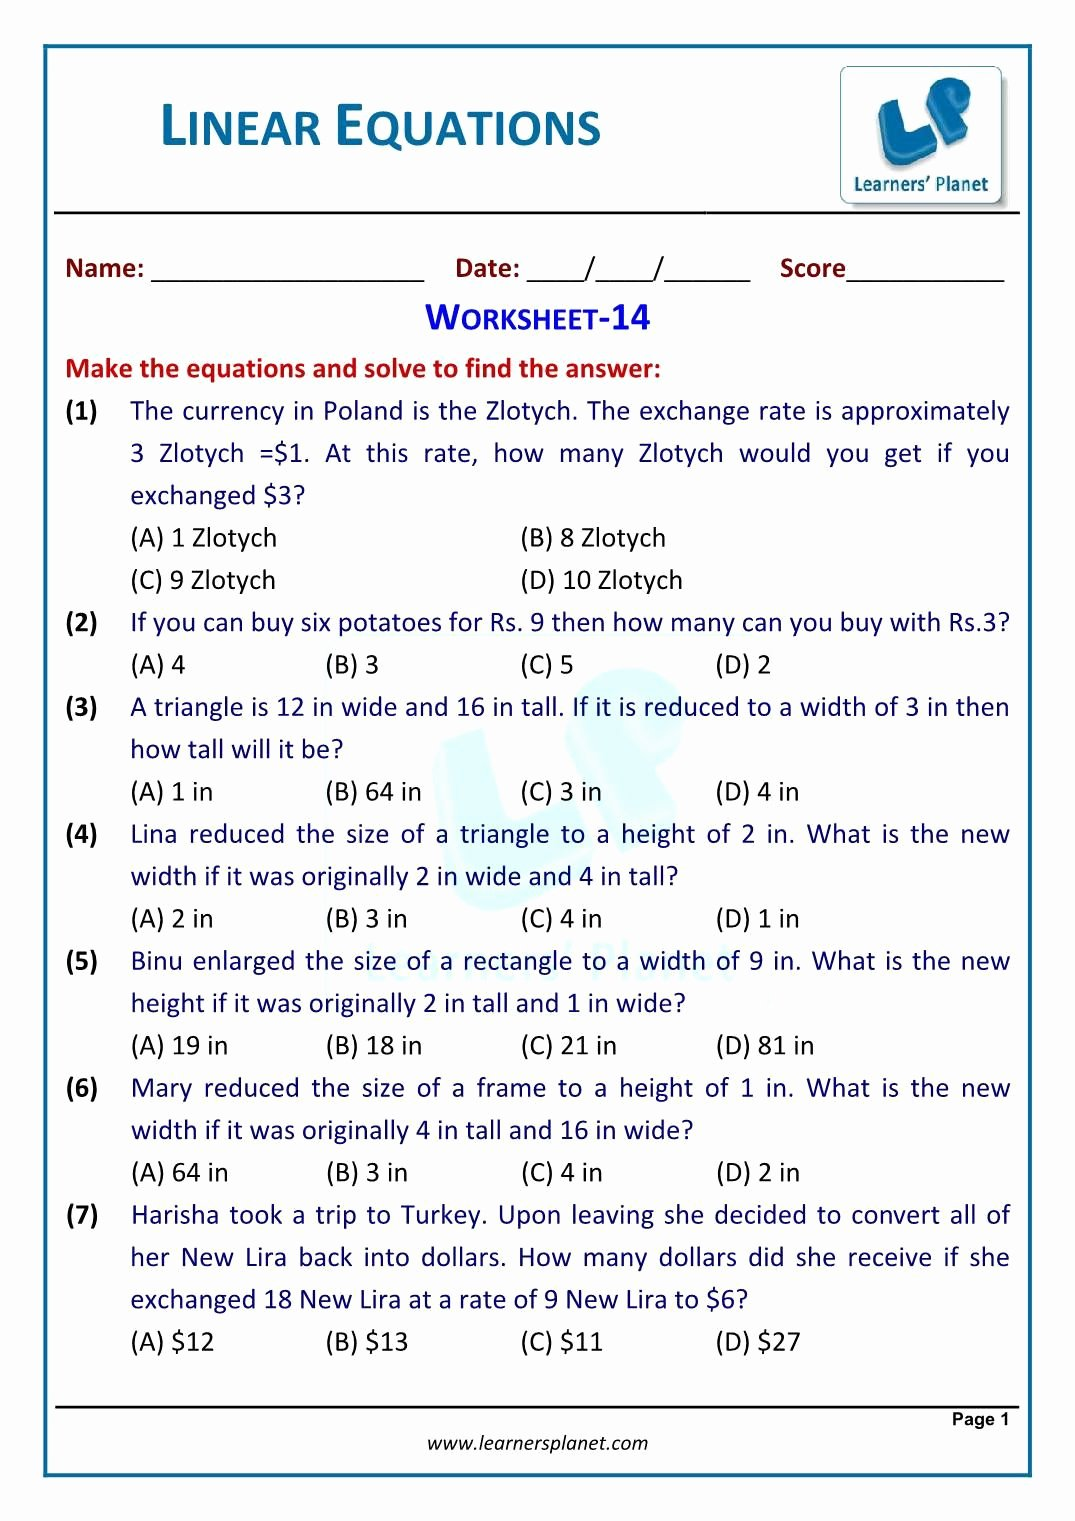 Linear Equation Word Problems Worksheet Printable 4 Linear Equations In E Variable Word Problems Worksheet